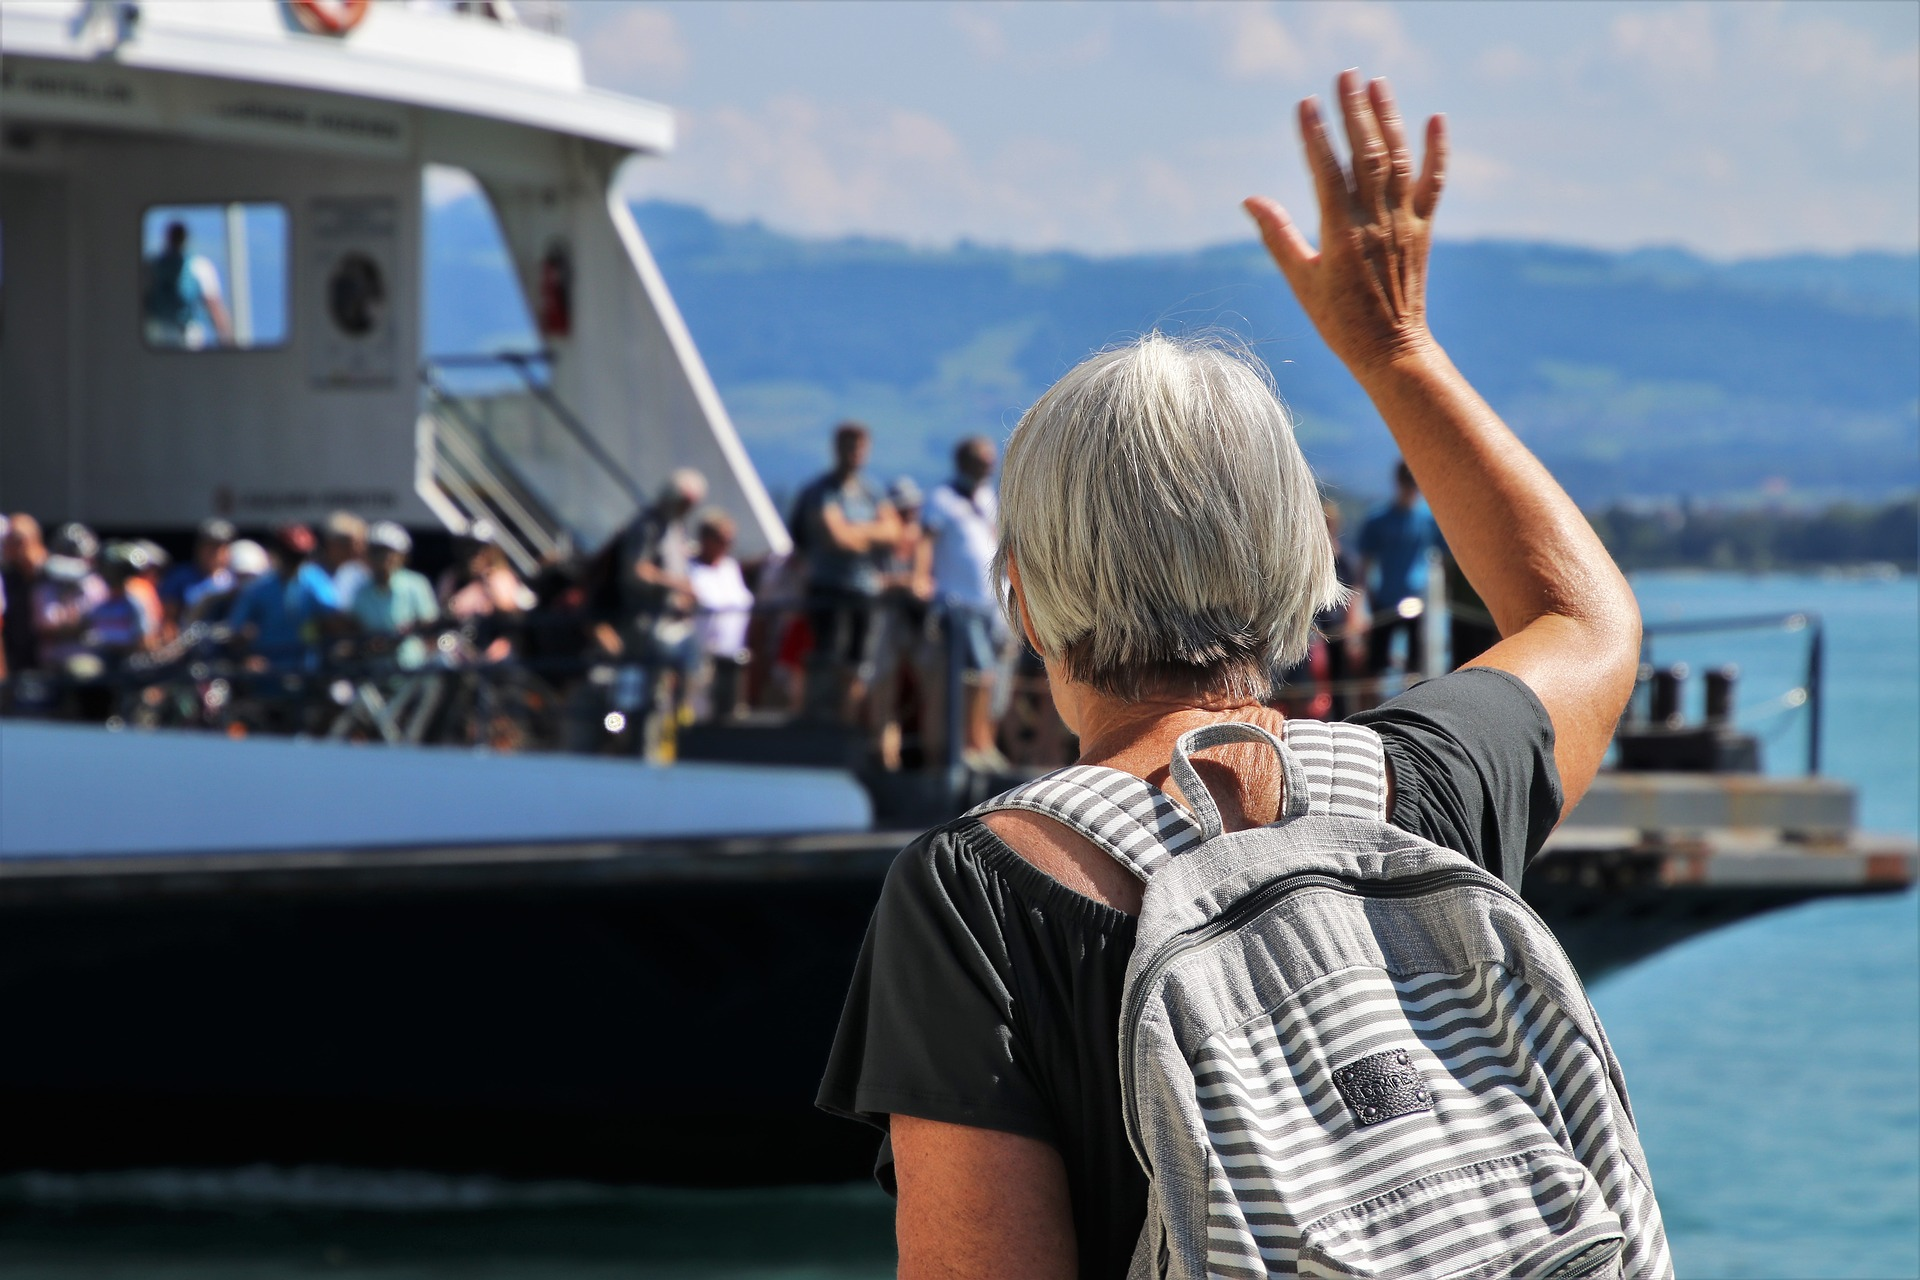 Woman waves to her friends after receiving great, free pension advice.